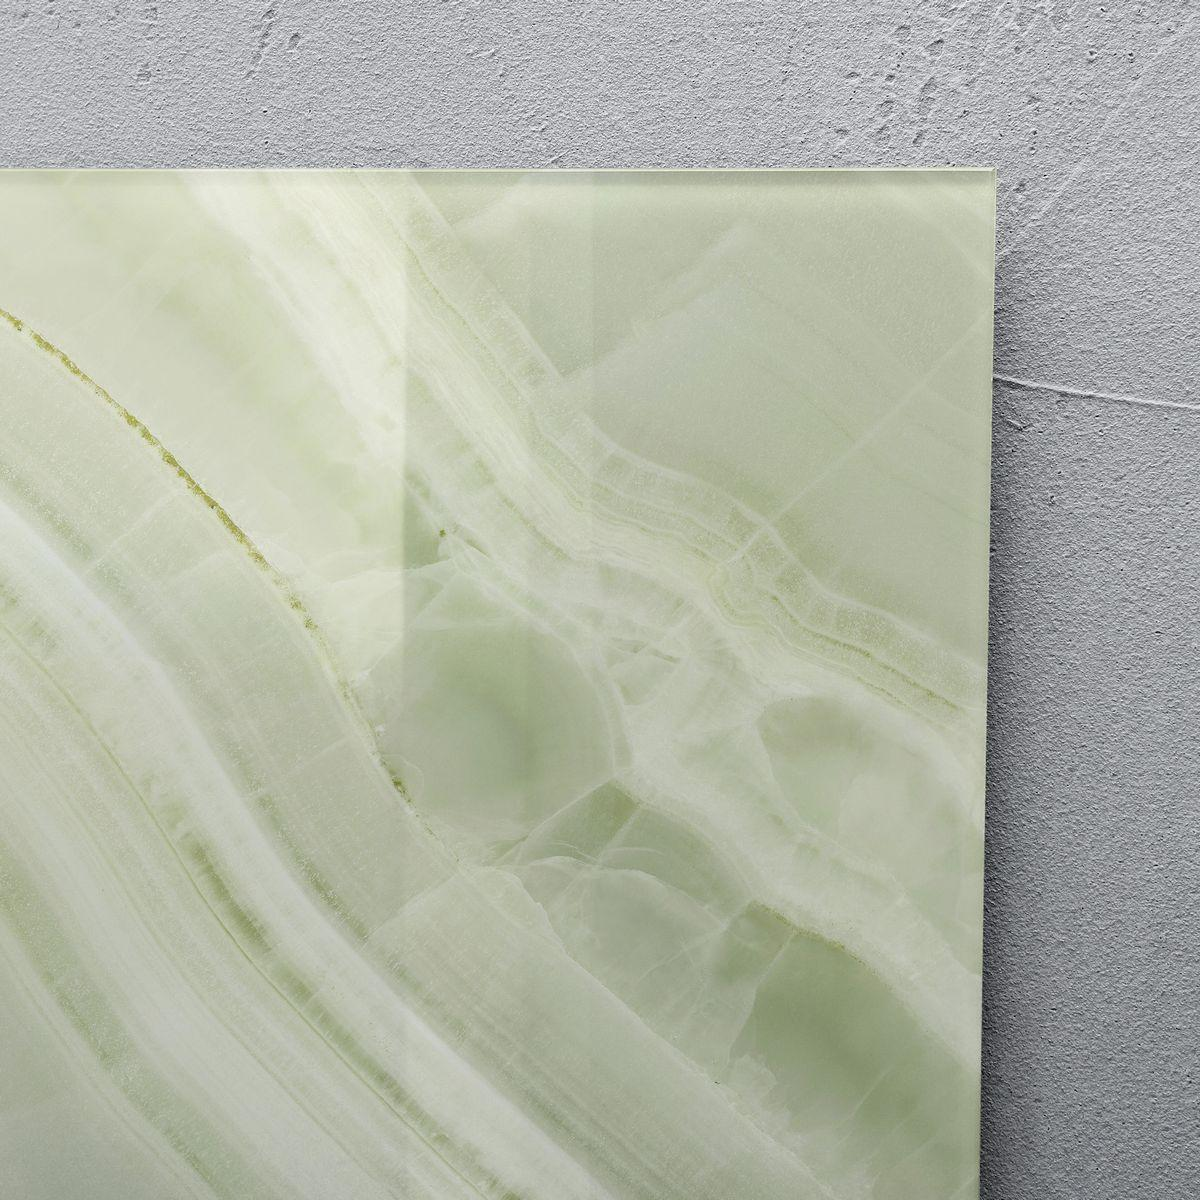 Glasmagnetboard-artverum-Detail-02-Green-Mineral